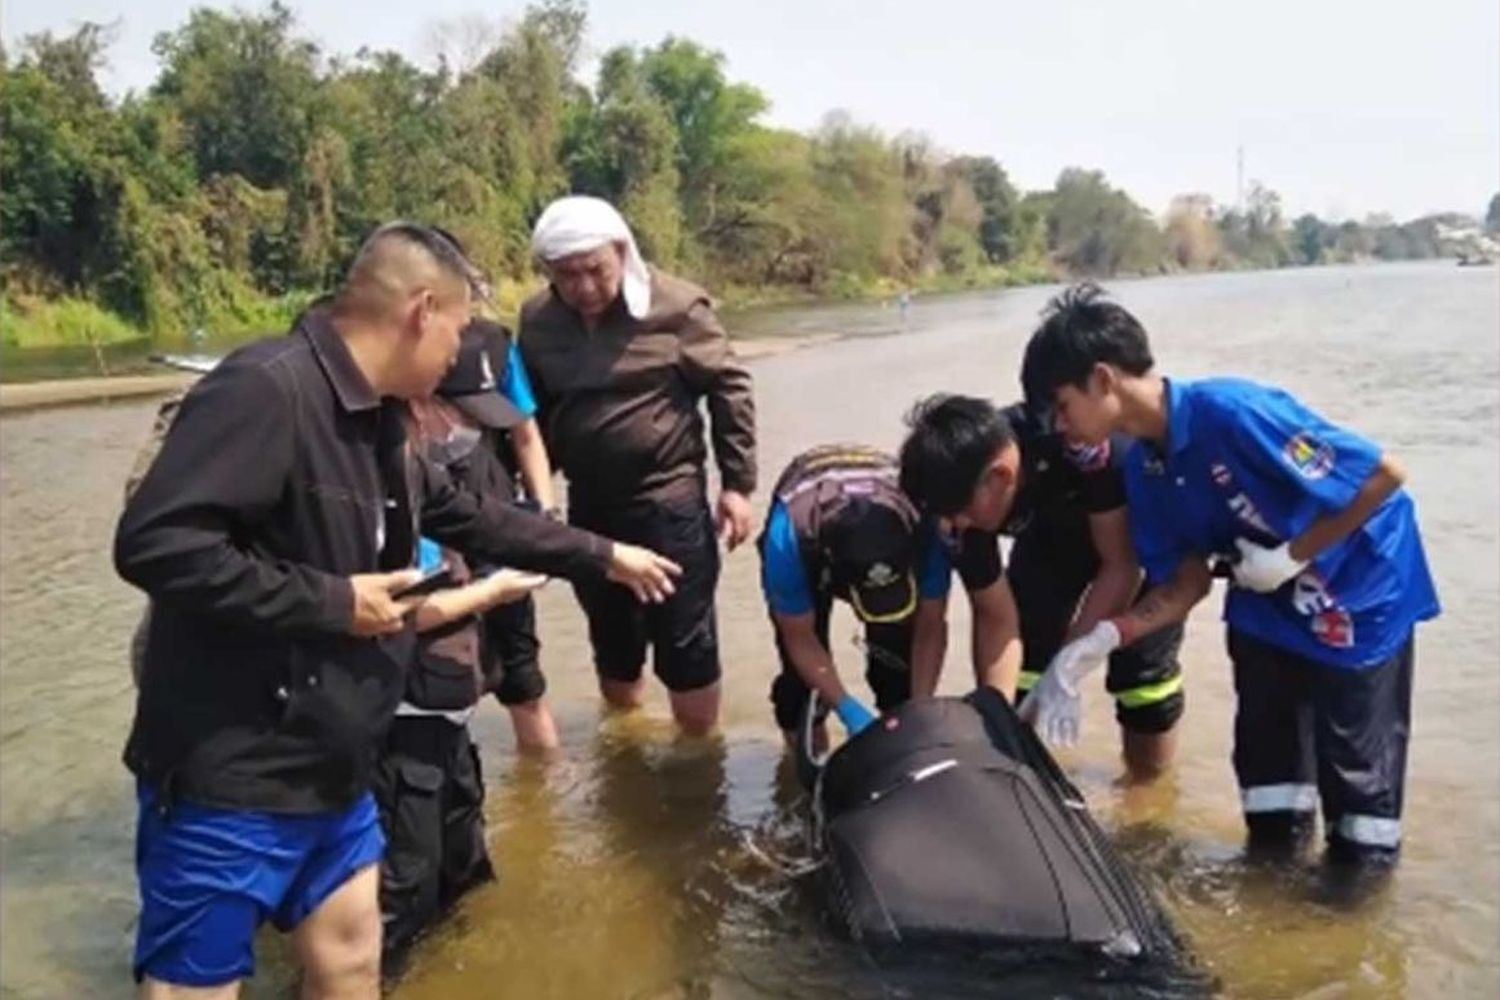 A black suitcase containing the body of a 30-year-old Chinese man is found floating in the Ping River in Muang district of Kamphaeng Phet on Tuesday. (Screenshot from ข่าวช่องวัน)